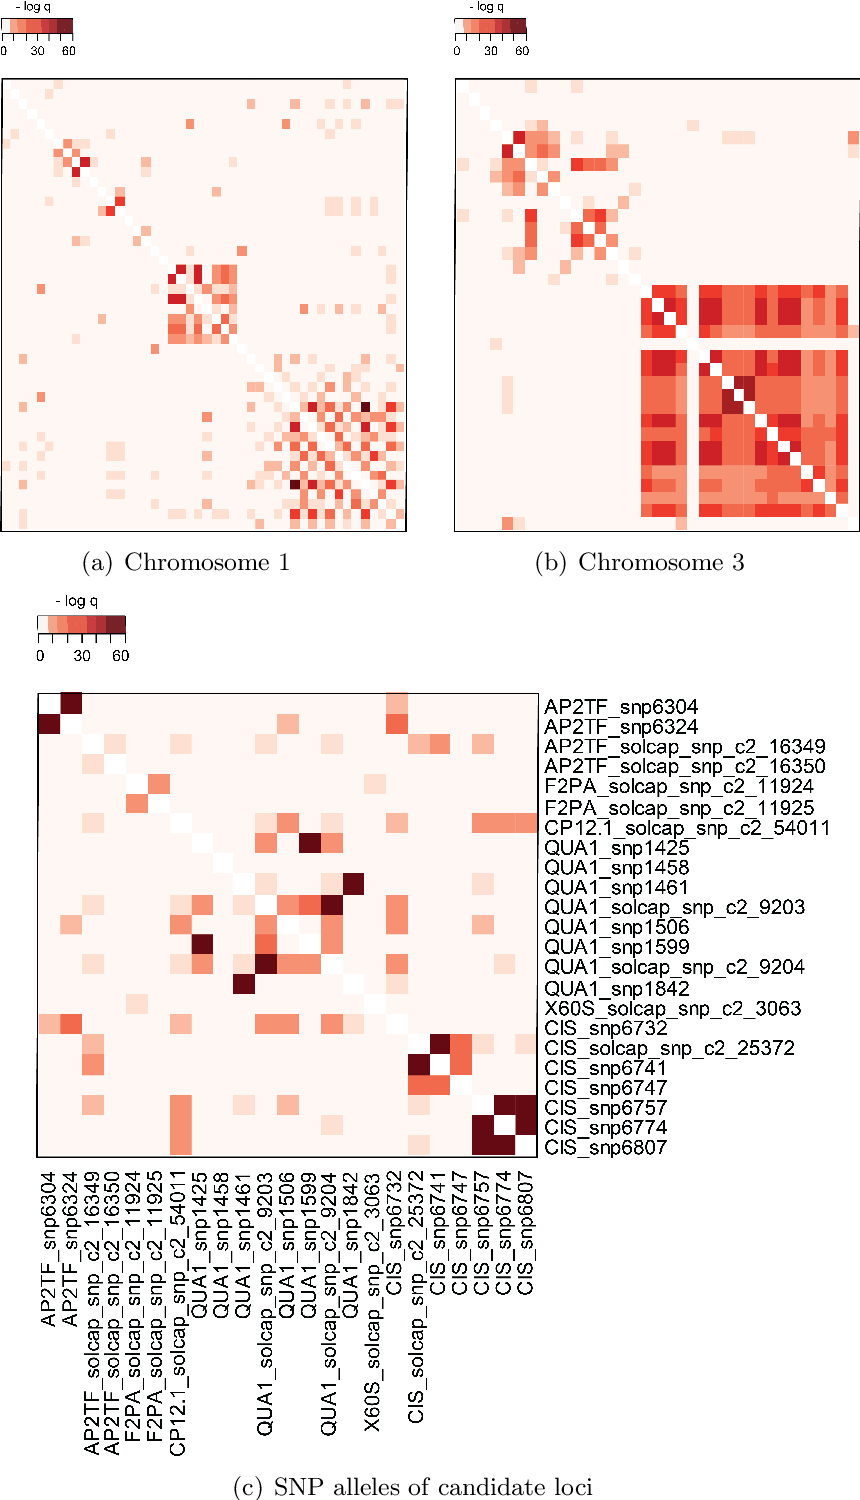 Figure 3.4.: Linkage disequilibrium between marker pairs of significant SolCAP SNP loci on chromosomes 1 (a) and 3 (b) as well as between SNP alleles of candidate loci that were scored in the entire population (c). Displayed are -log q-values of chi-square test between pairs of SolCAP SNPs. Each row and line corresponds to one SNP position